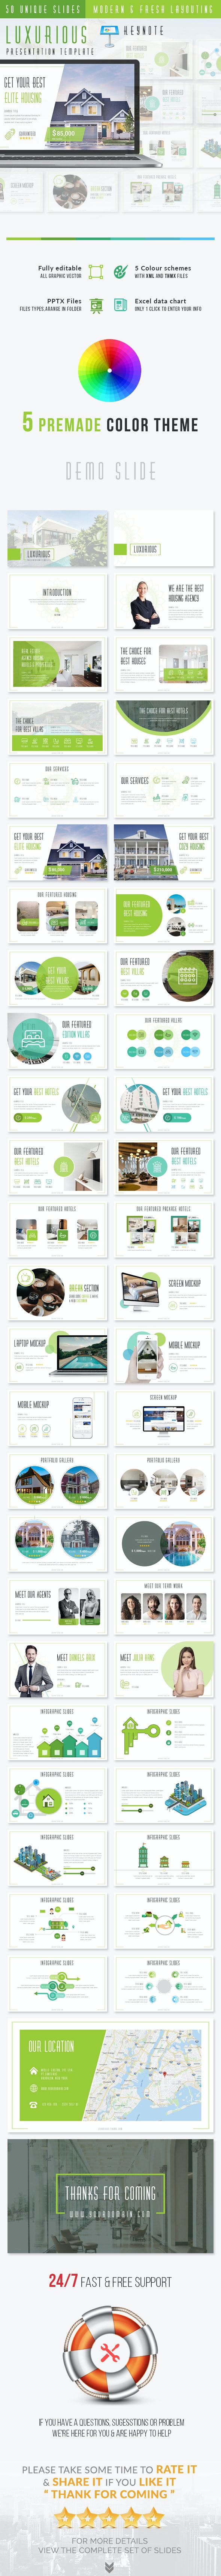 Luxurious - Real Estate Agency Keynote Presentation Template - Business Keynote Templates